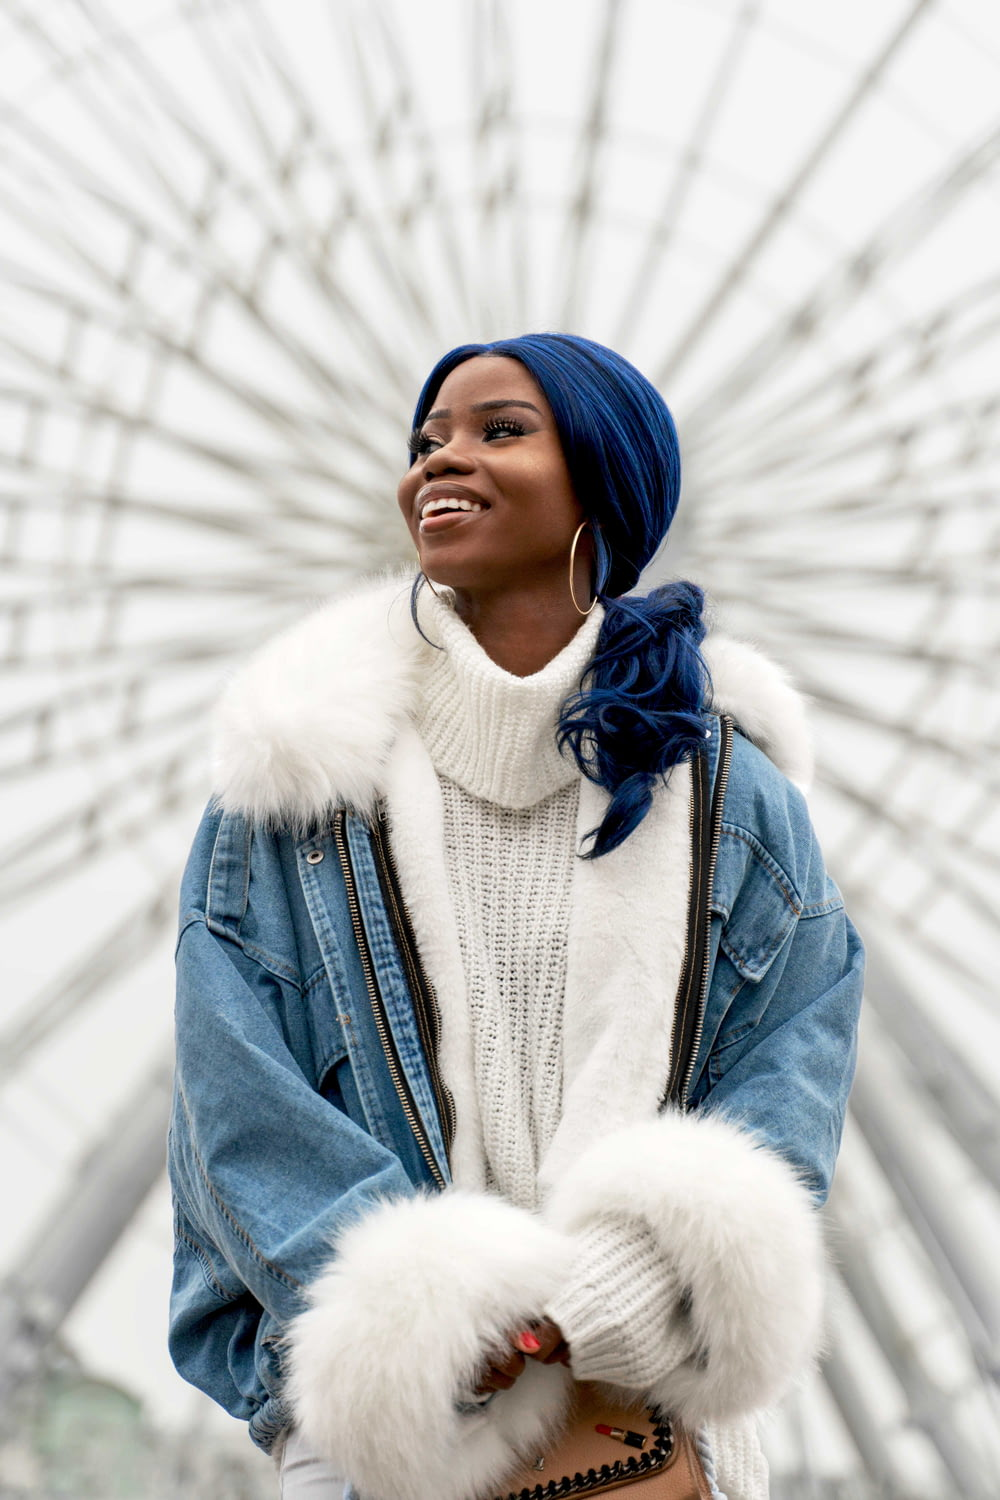 woman in blue denim jacket and white scarf